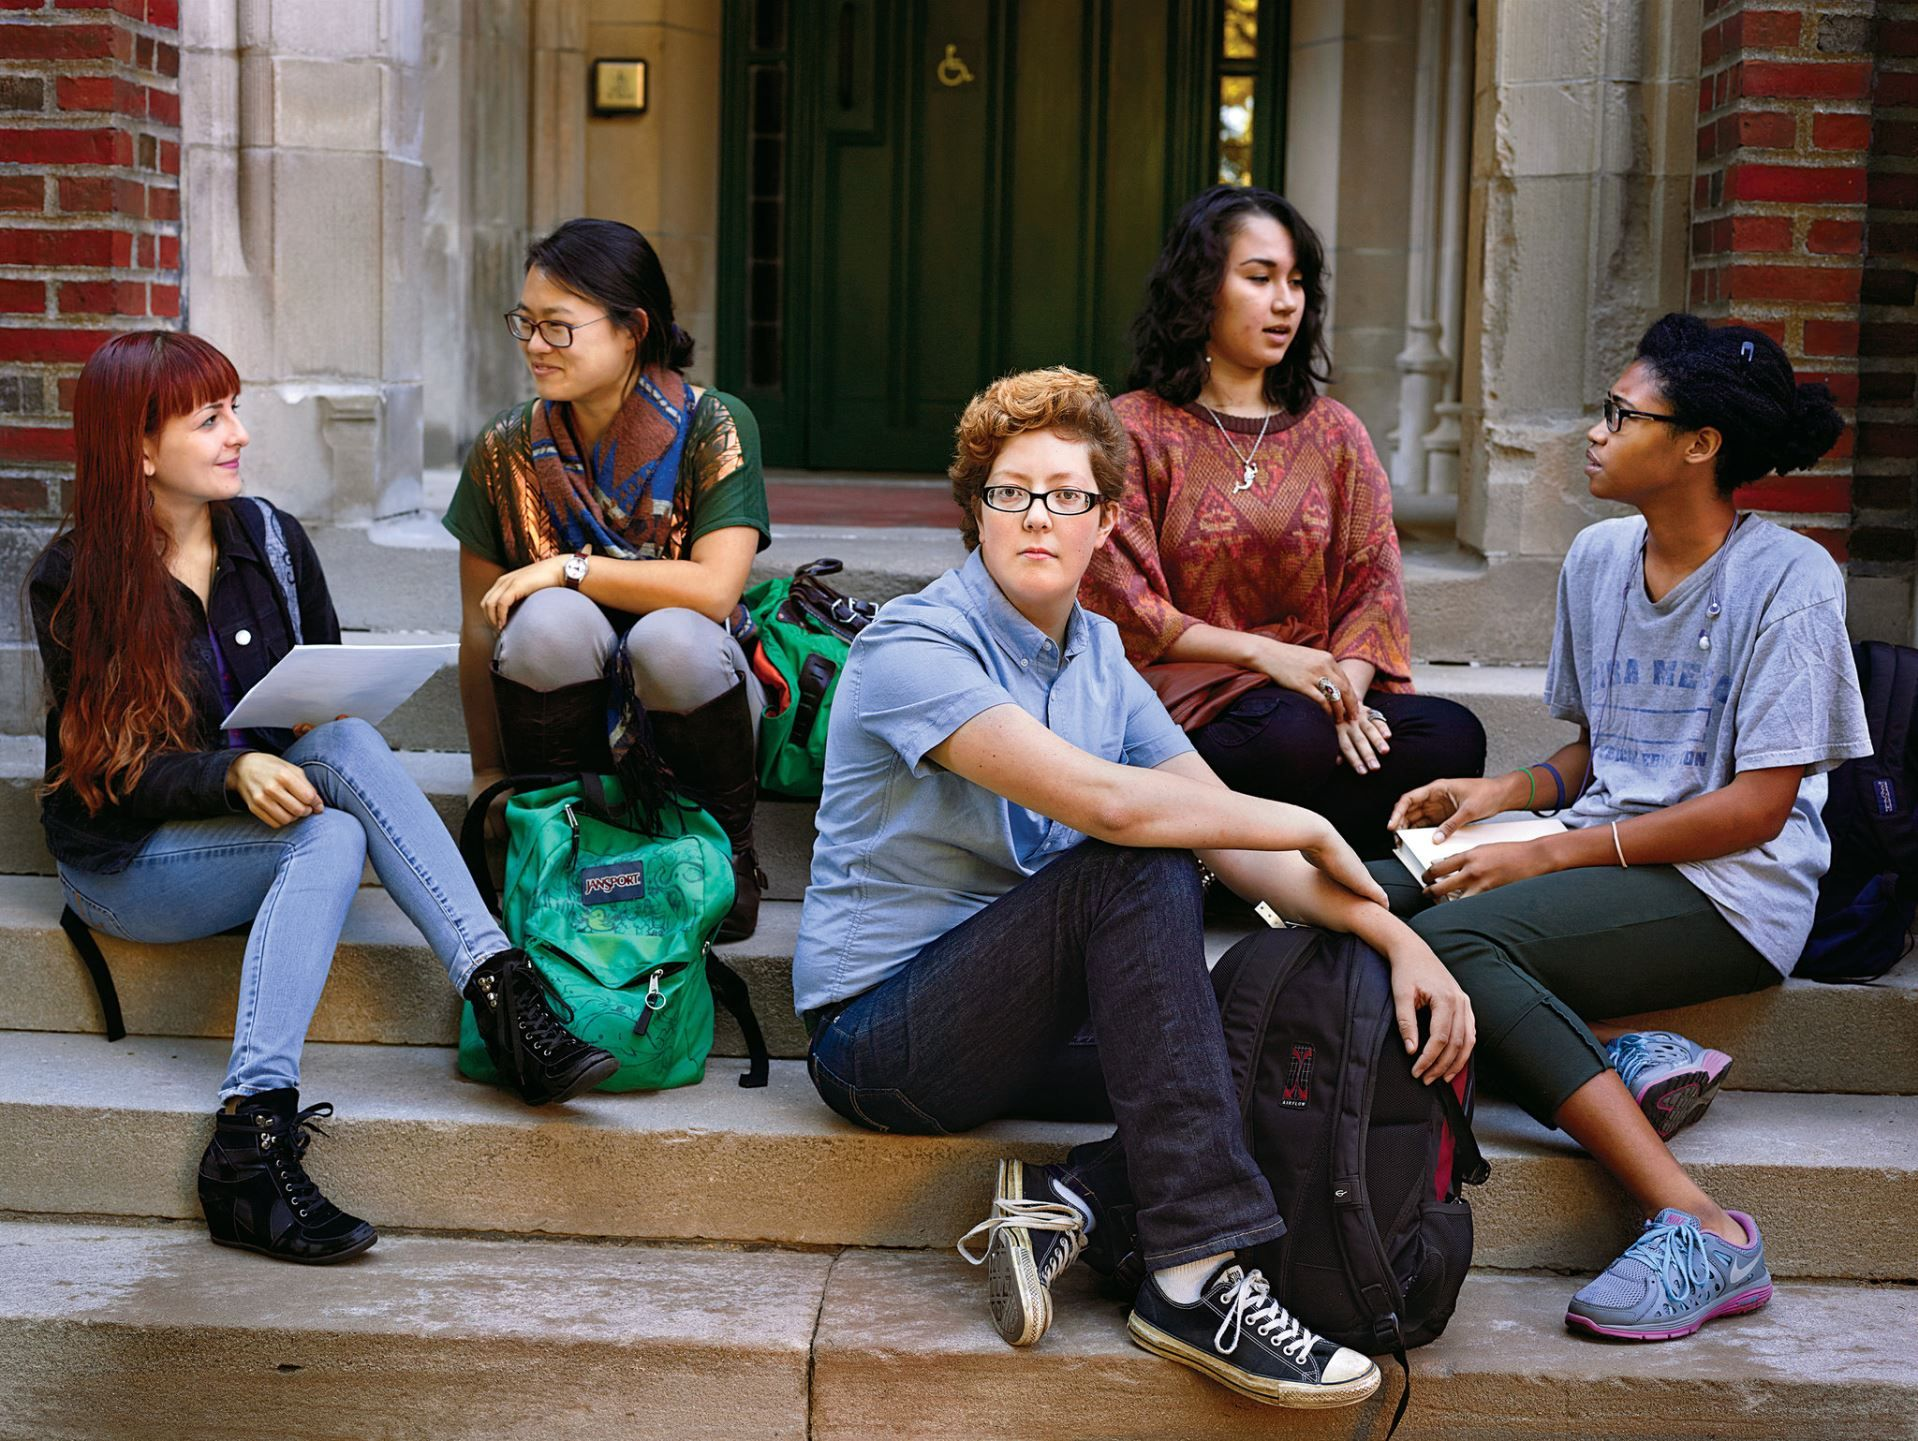 Timothy Boatwright (center), a trans man, with his Wellesley classmates. - Martin Schoeller for The New York Times